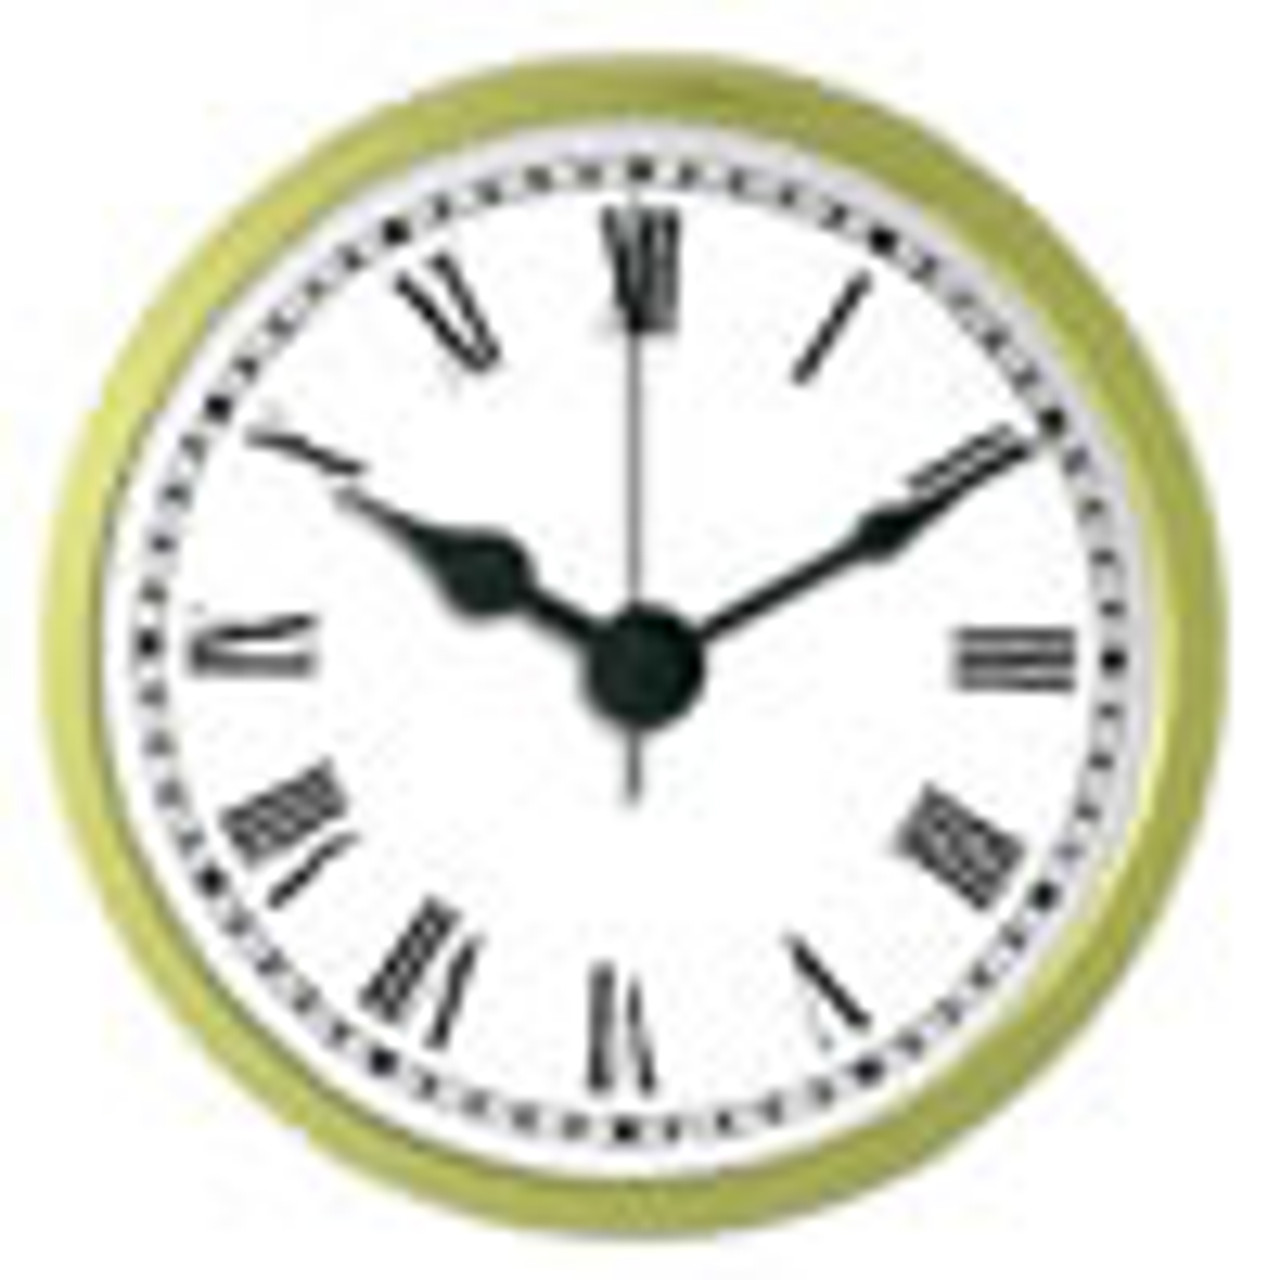 2-1/4 Inch (59mm) White Face Roman Clock Insert/Fit Up